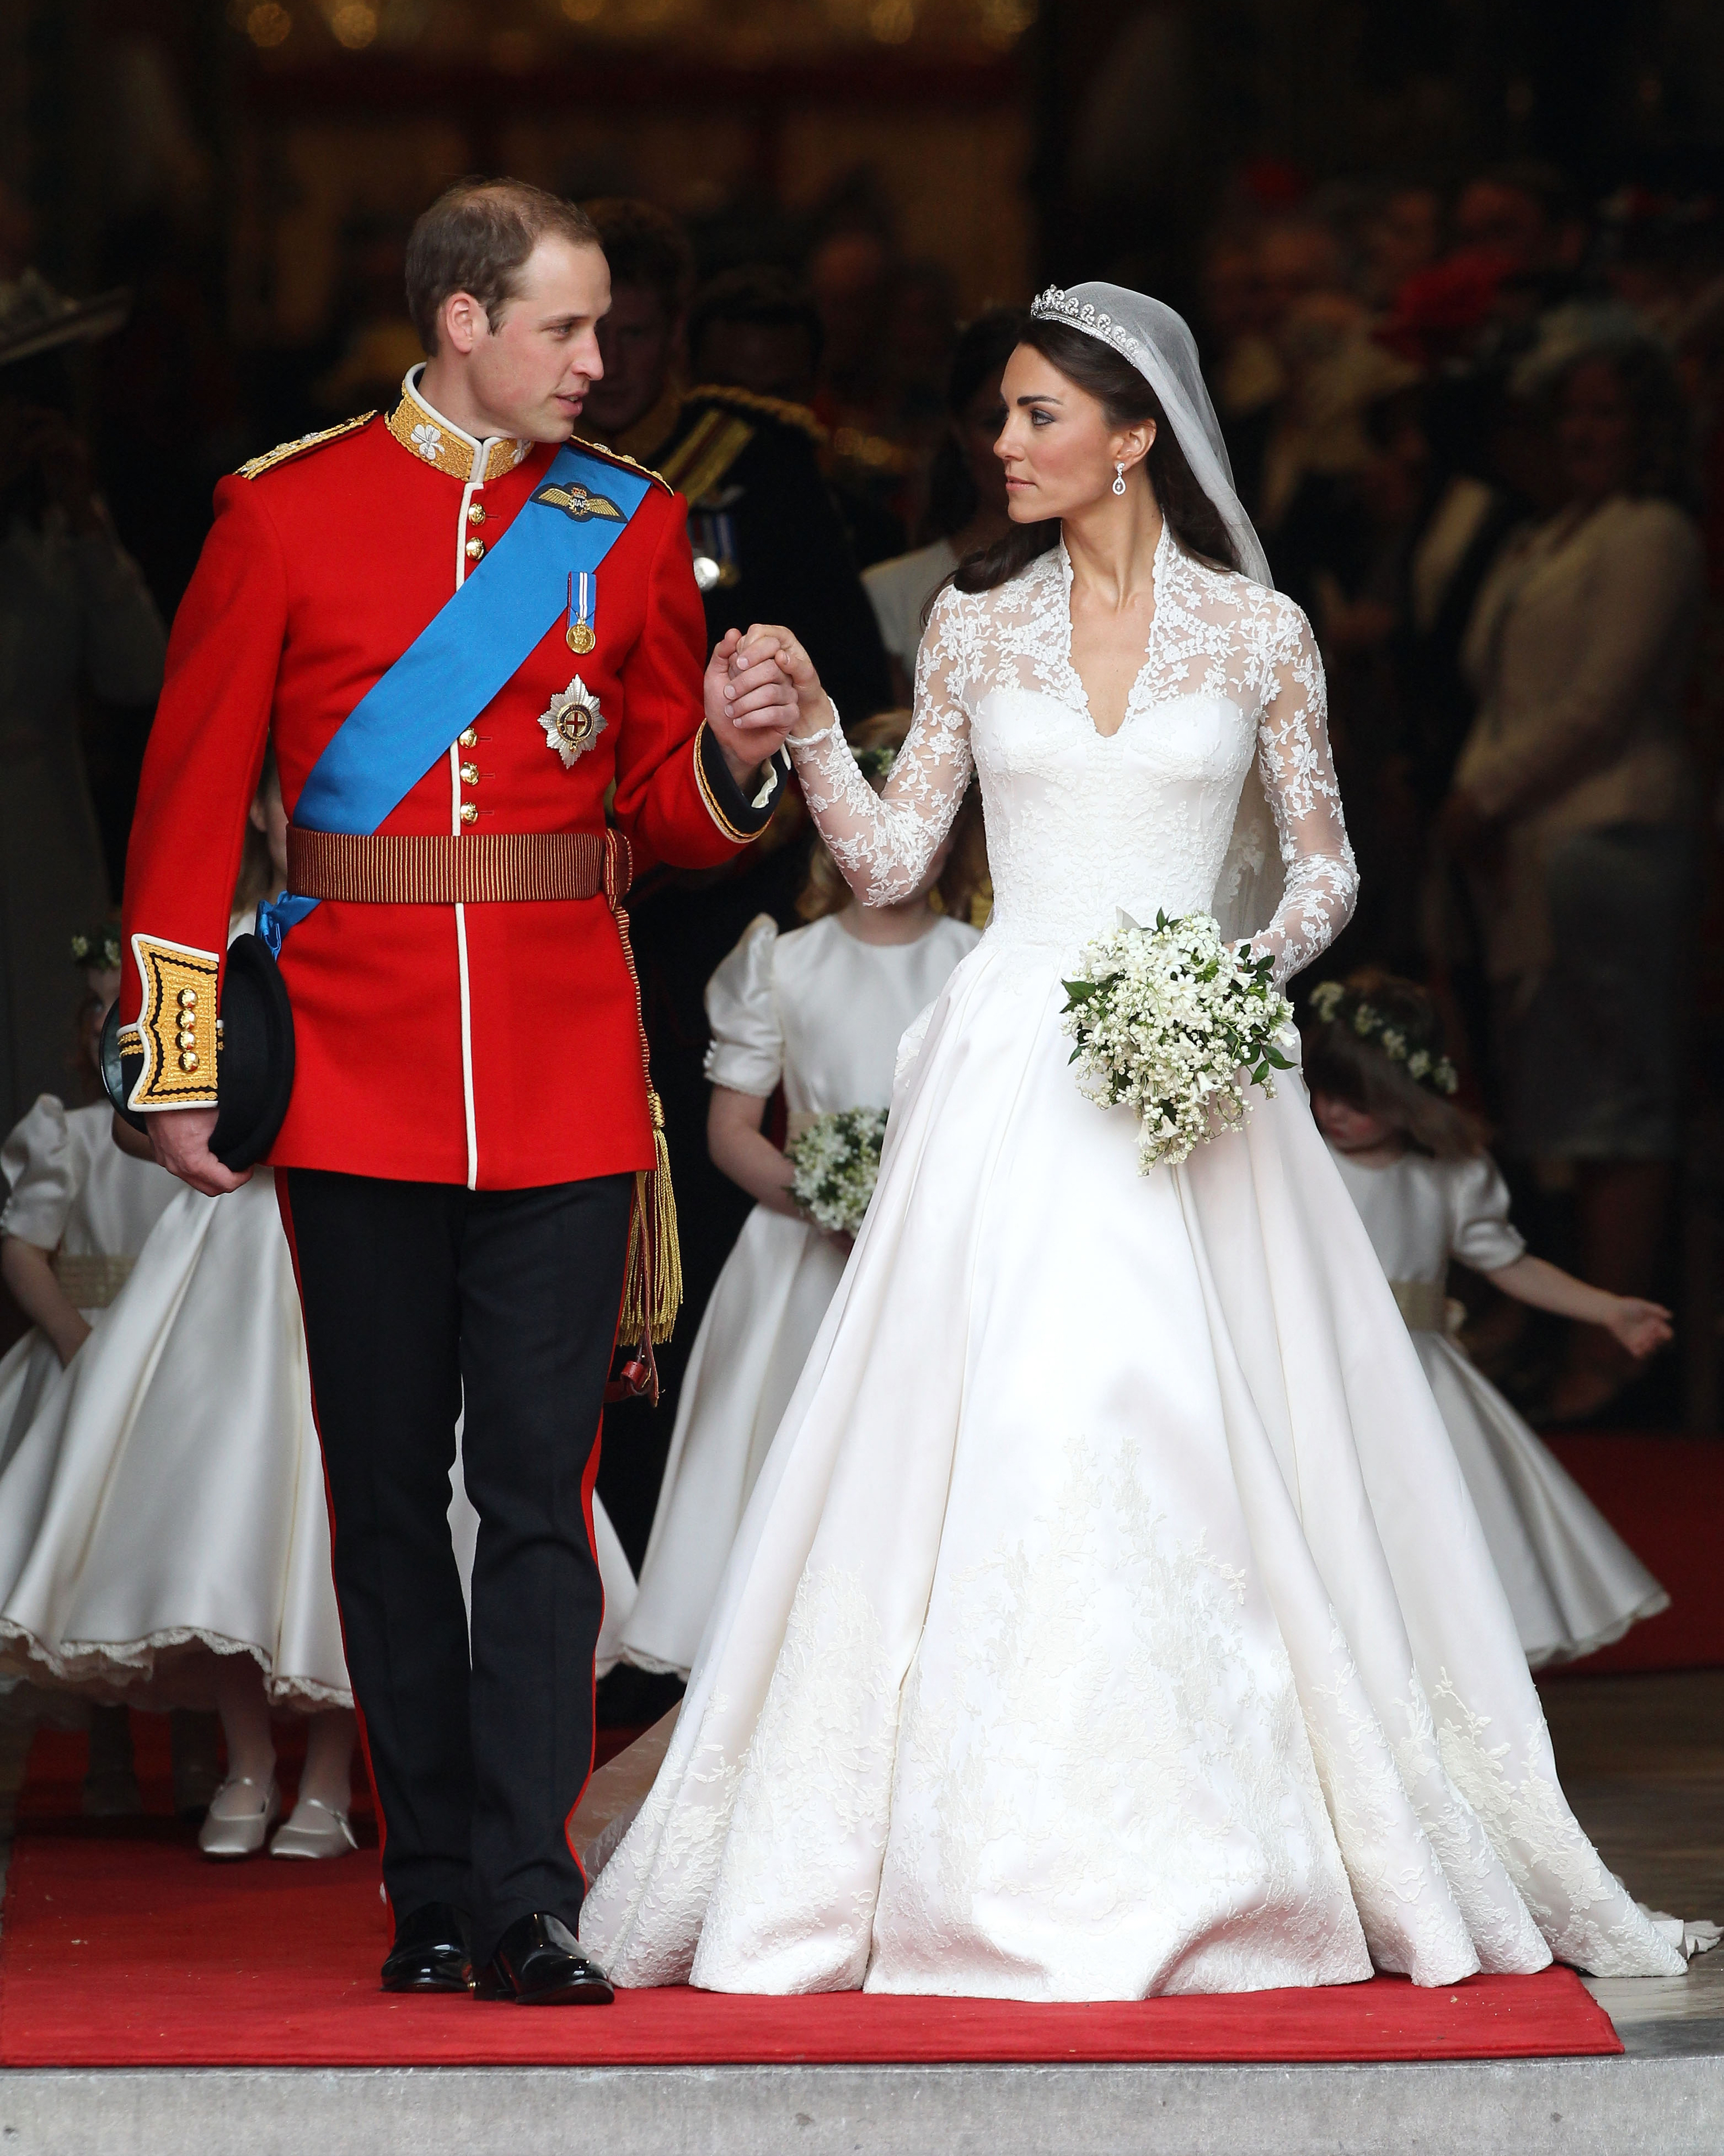 Prince William and Kate Middleton's Most Famous Wedding Photo Almost Didn't Happen